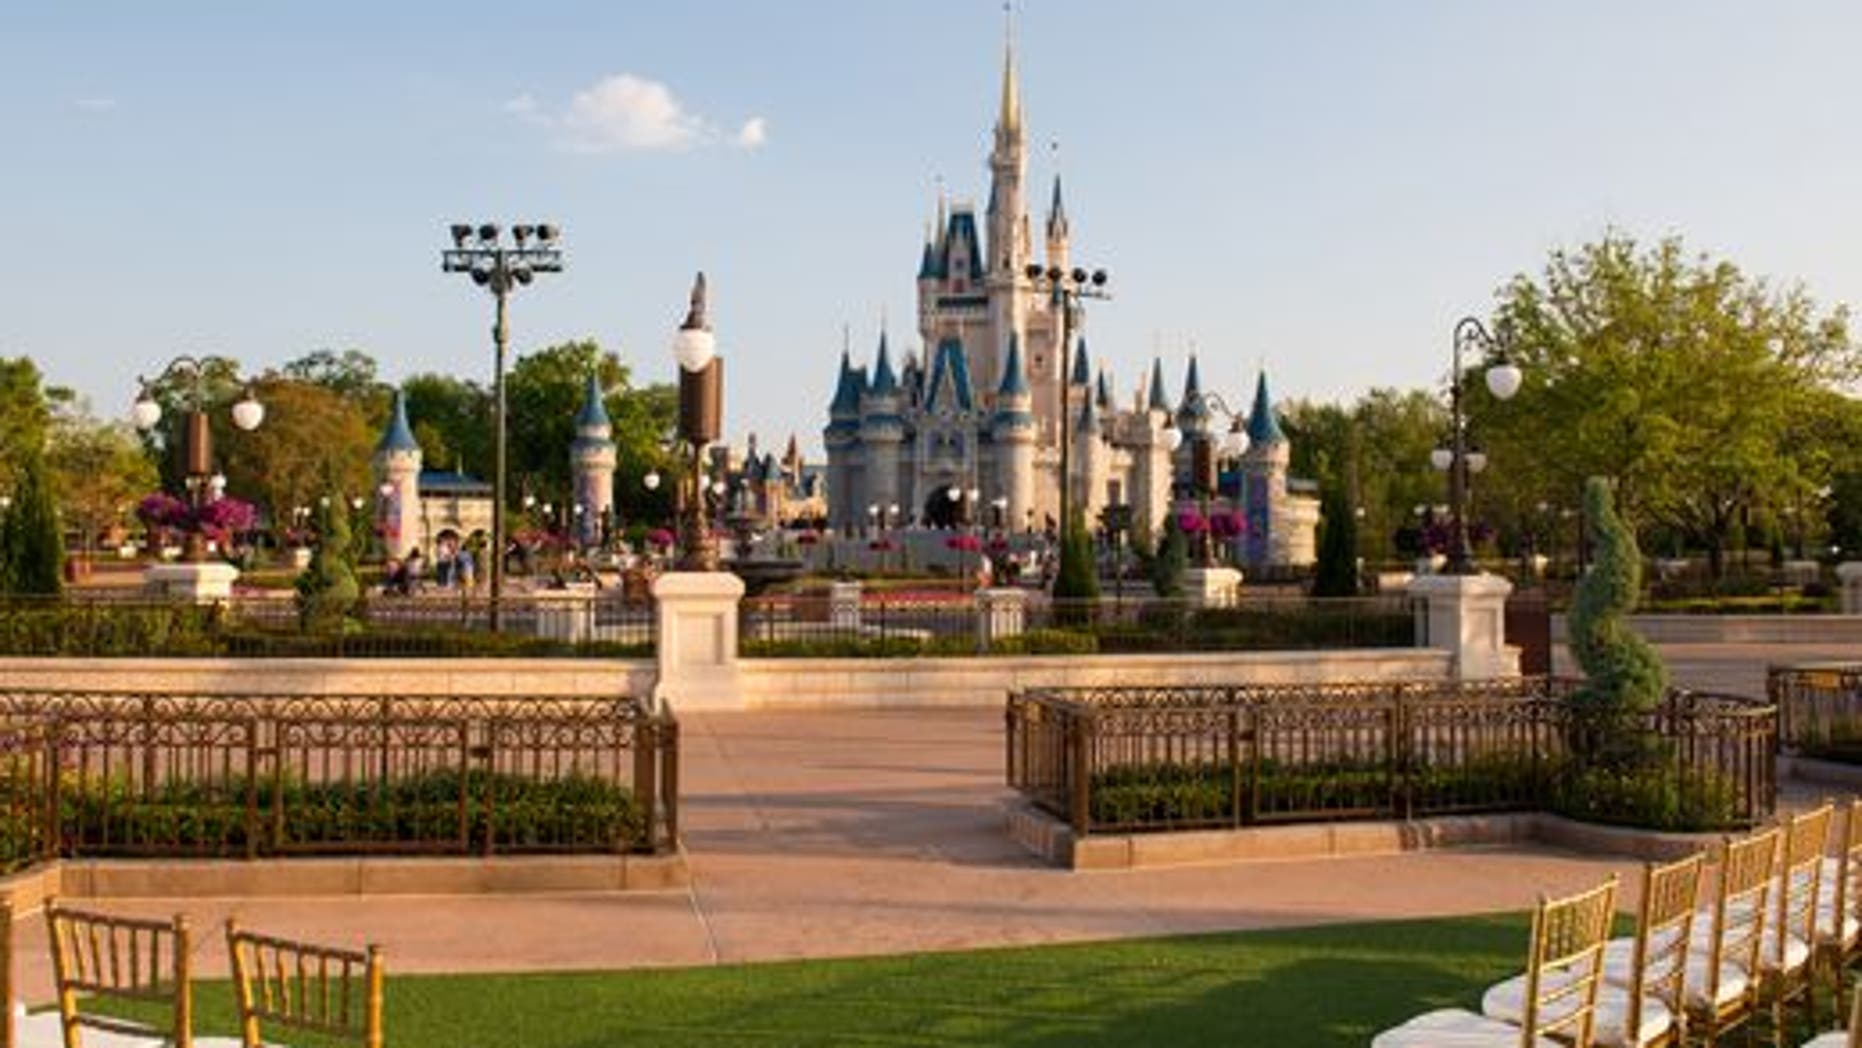 The park's new East Plaza Garden boasts stunning views of Cinderella's Castle.